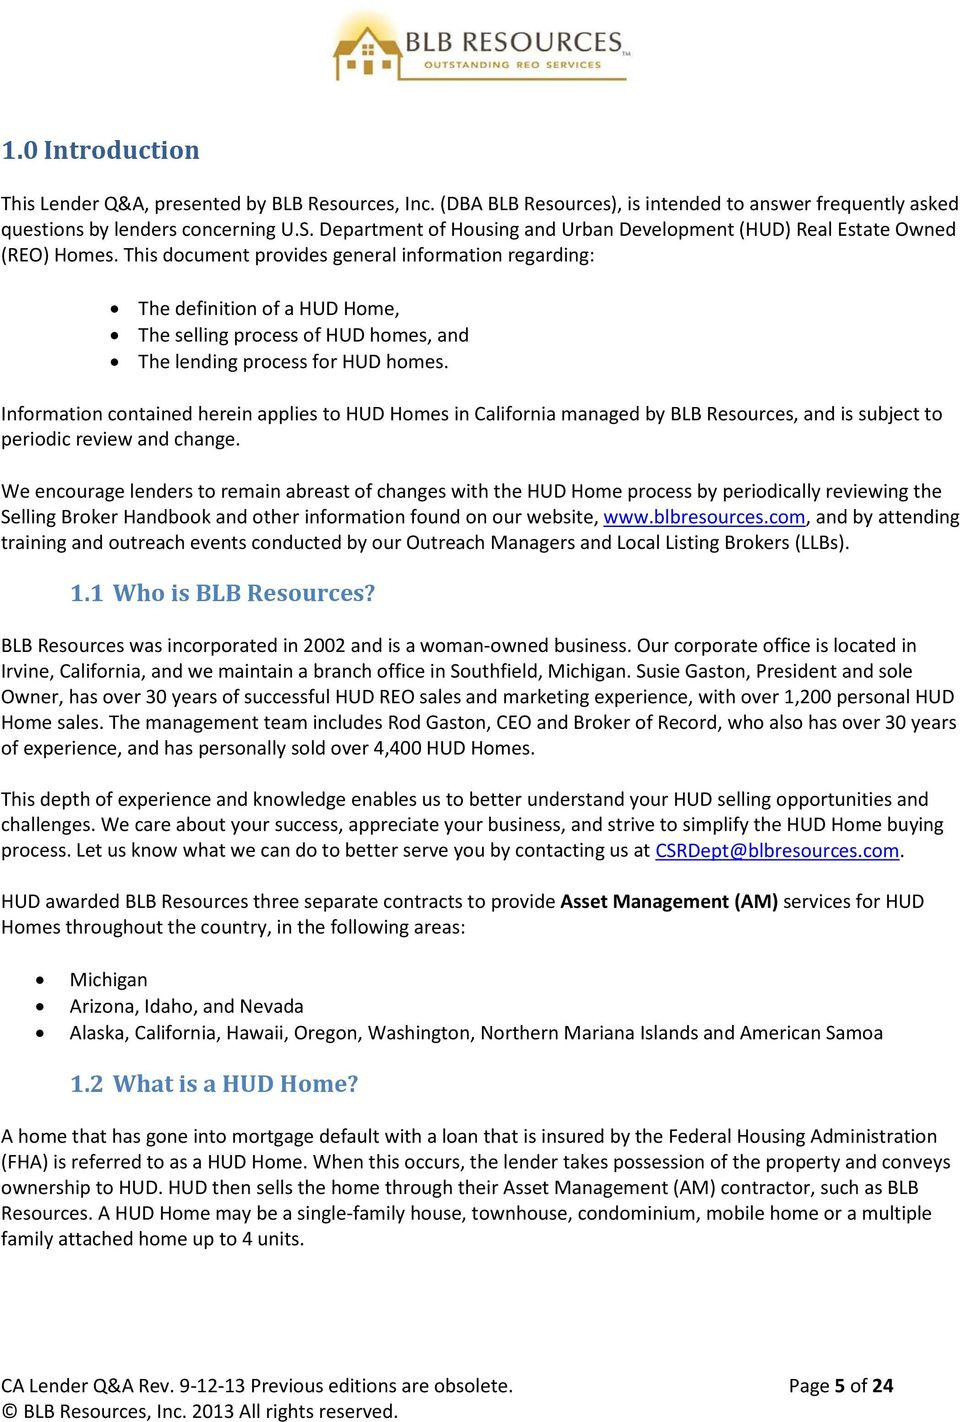 lender q&a. a guide to lending on hud homes in california. revised - pdf